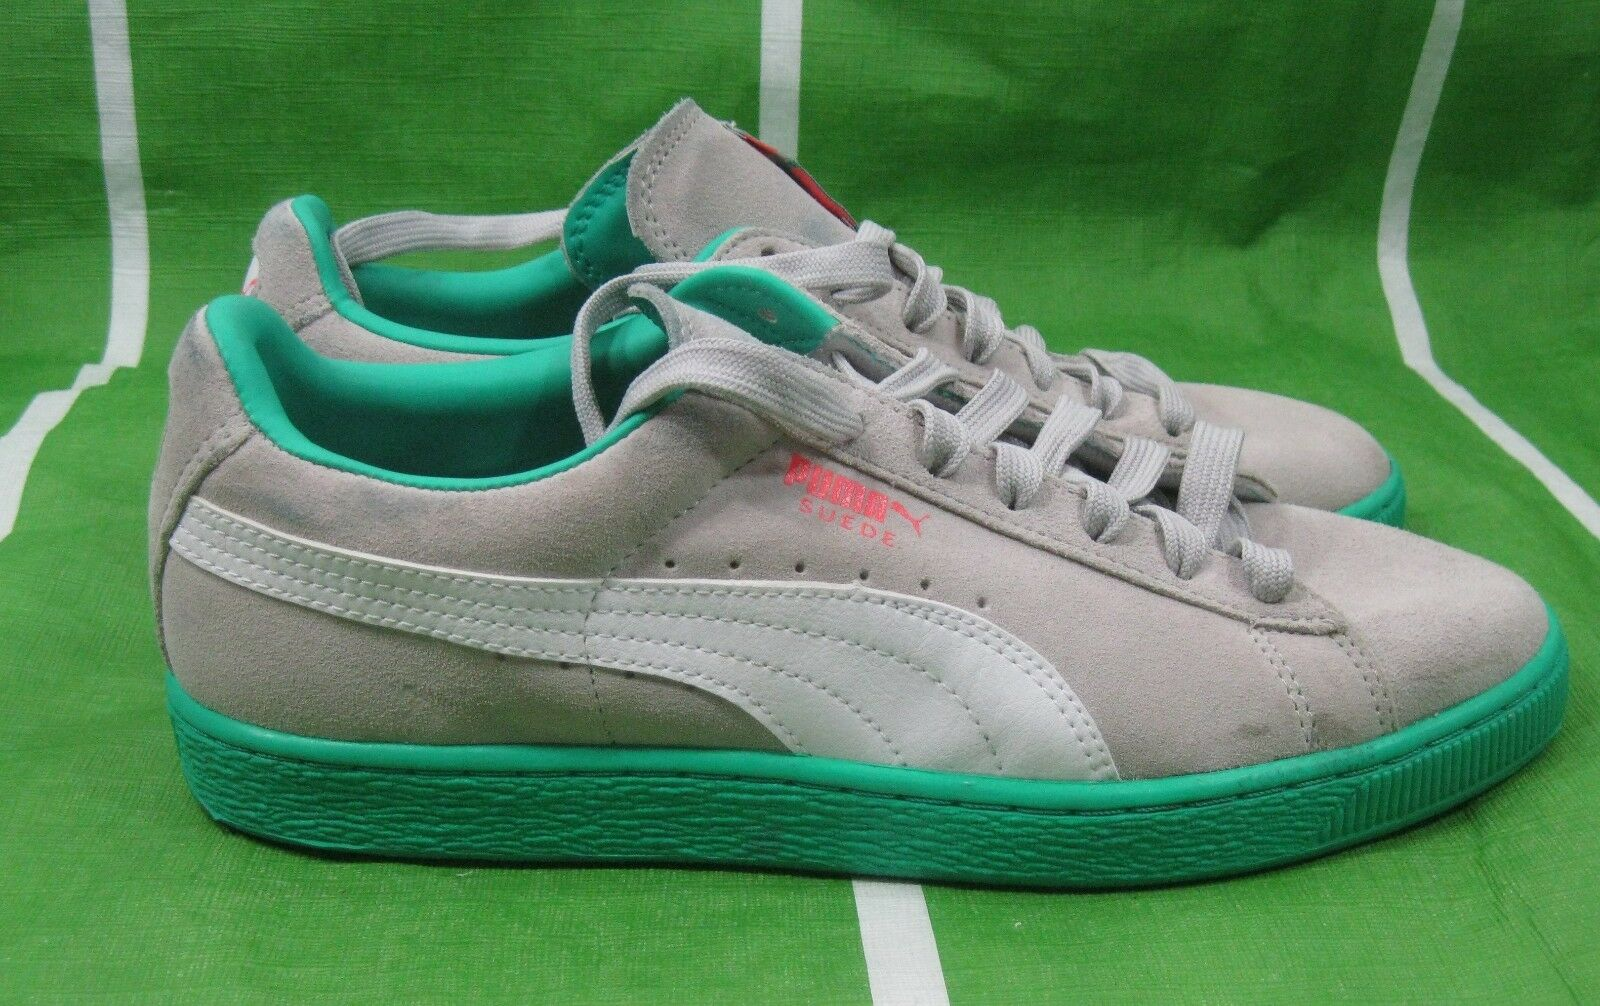 Puma Suede Classic + LFS hommes 356328-11 Gris Violet Fluo Teal Chaussures